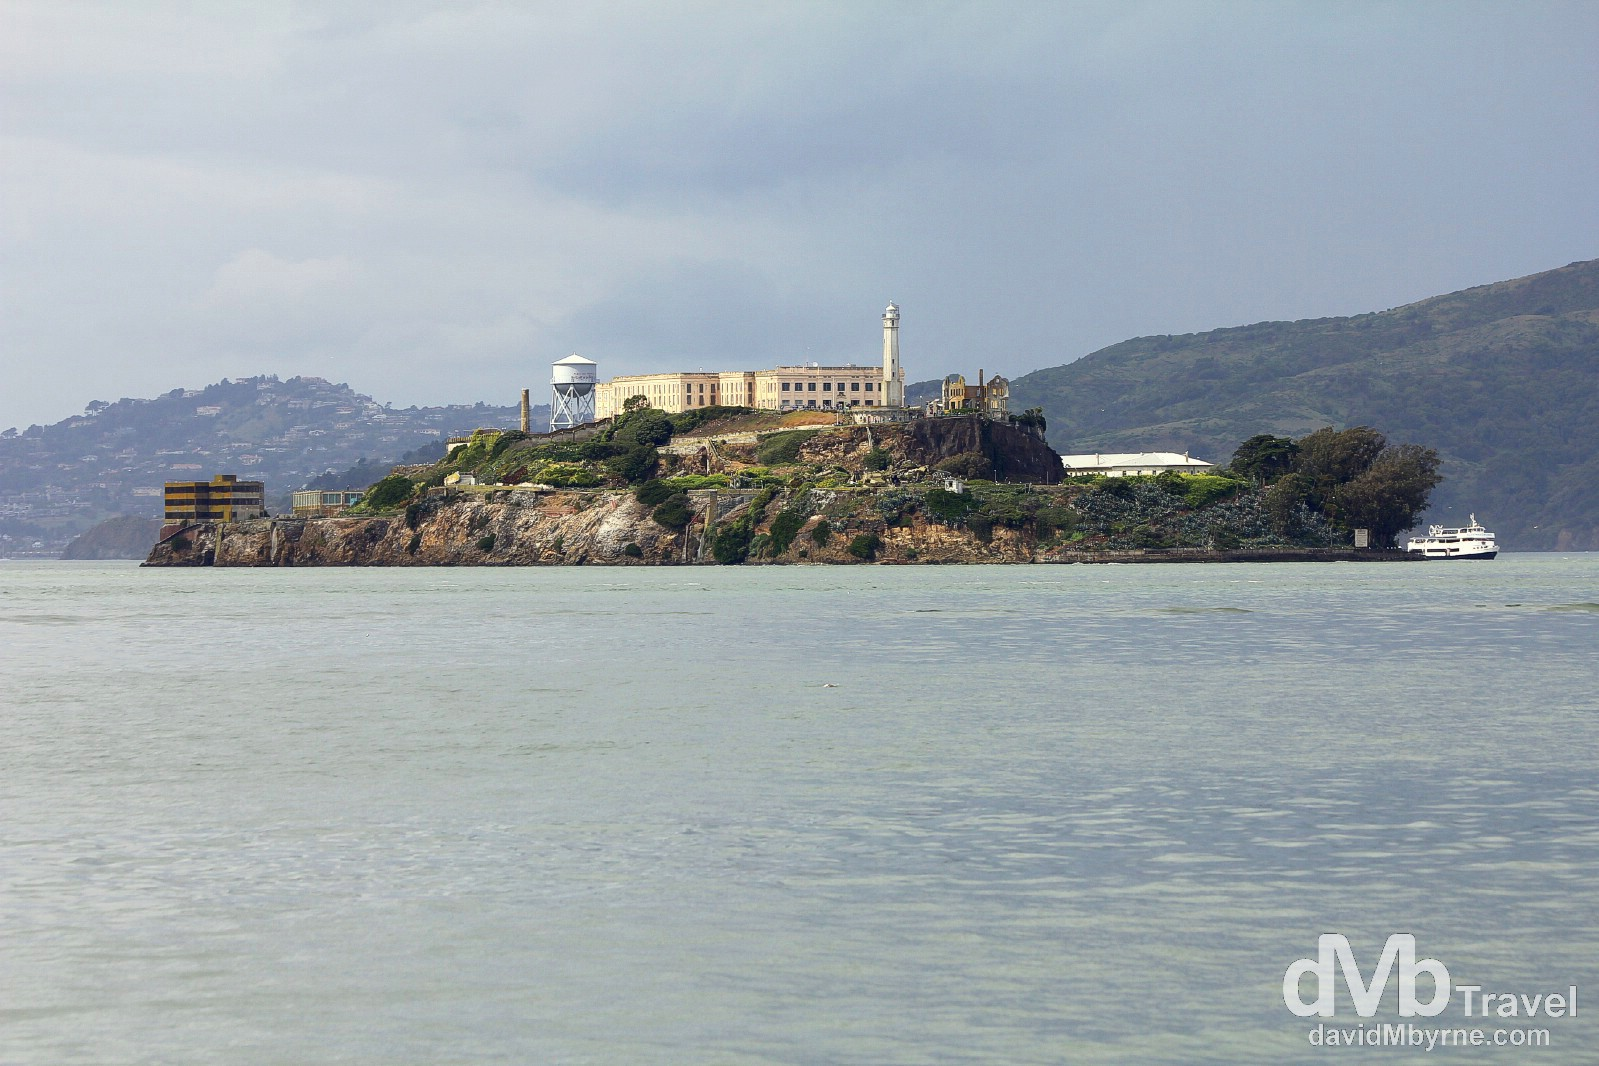 Alcatraz island as seen from the waterfront near Fisherman's Wharf, San Francisco, California, USA. March 31st 2013.